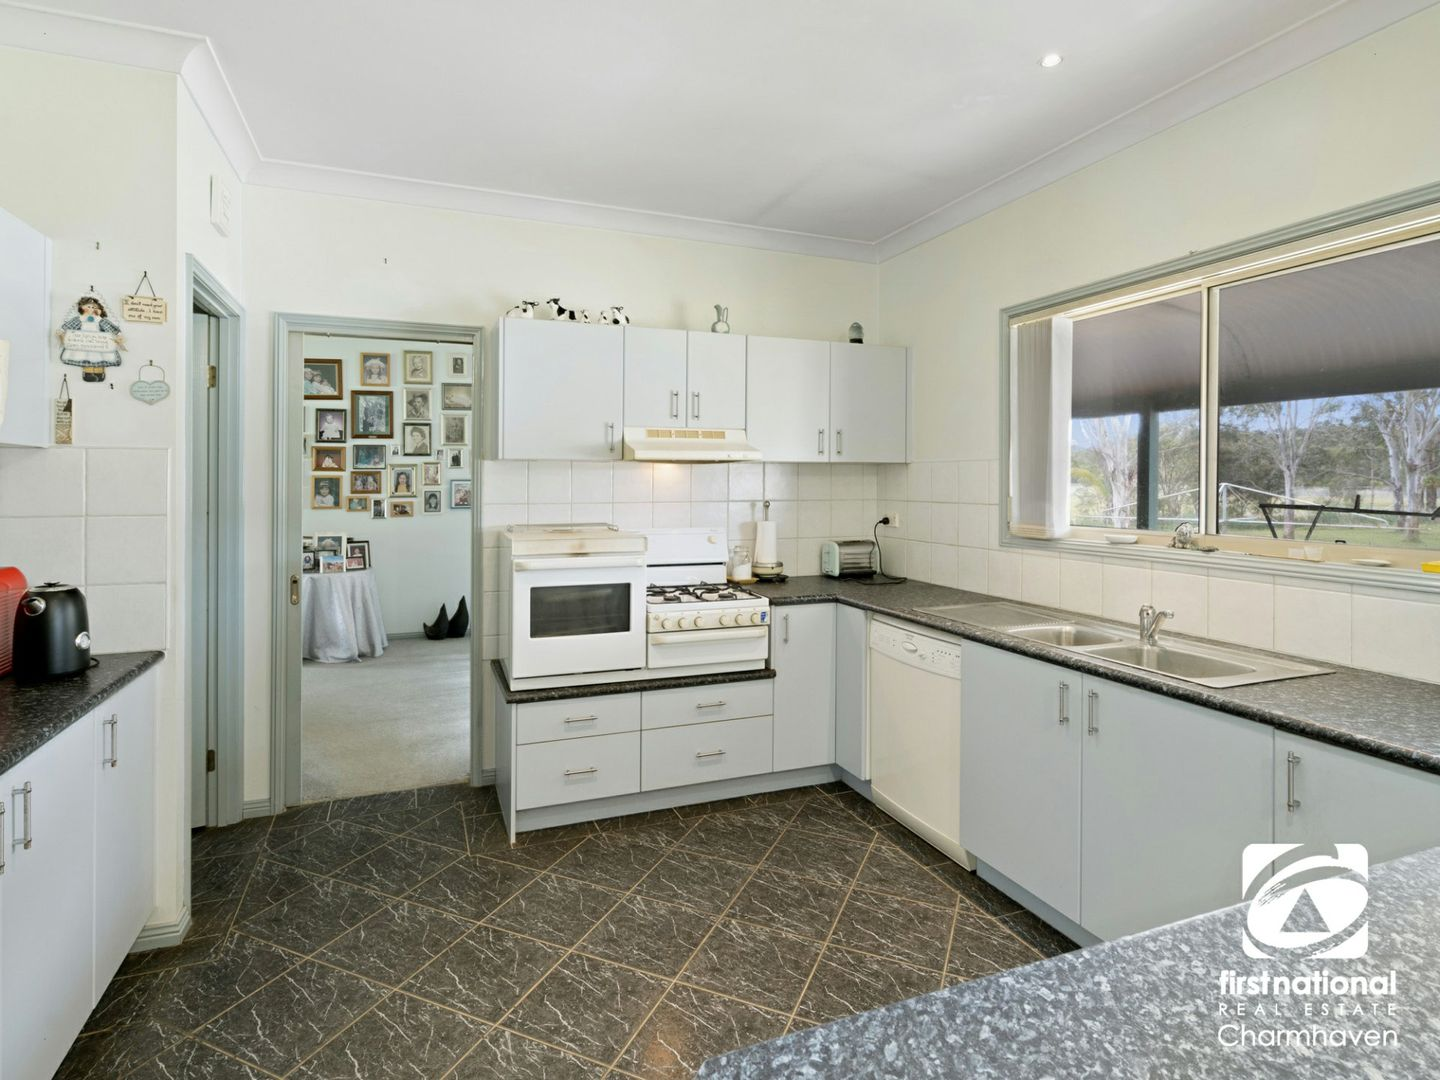 30-34 Virginia Road, Hamlyn Terrace NSW 2259, Image 2